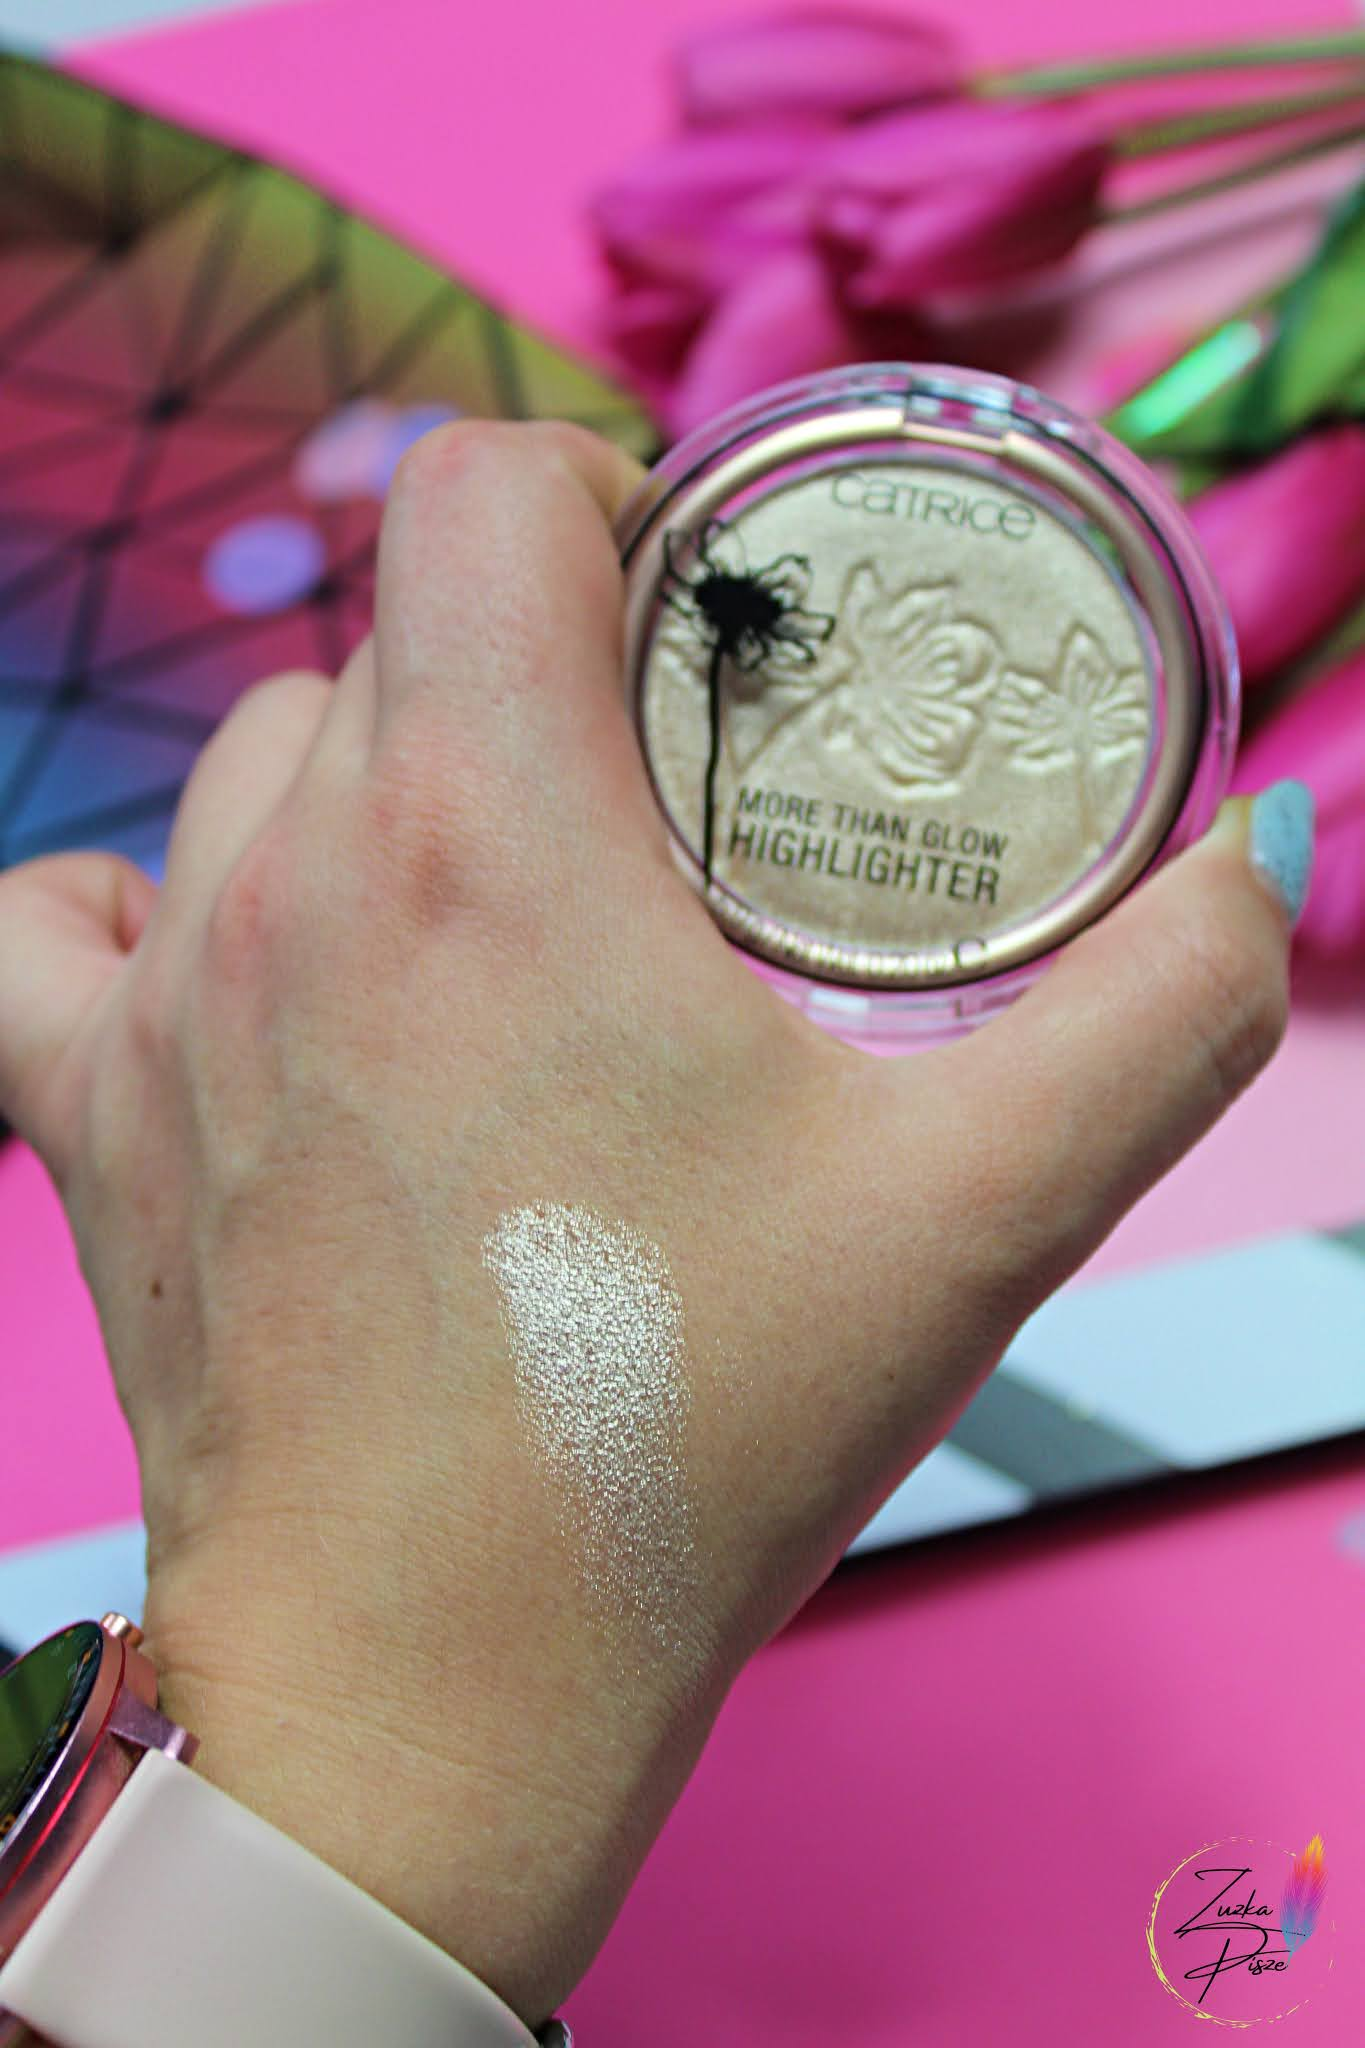 CATRICE - More Than Glow Highlighter - rozświetlacz do twarzy